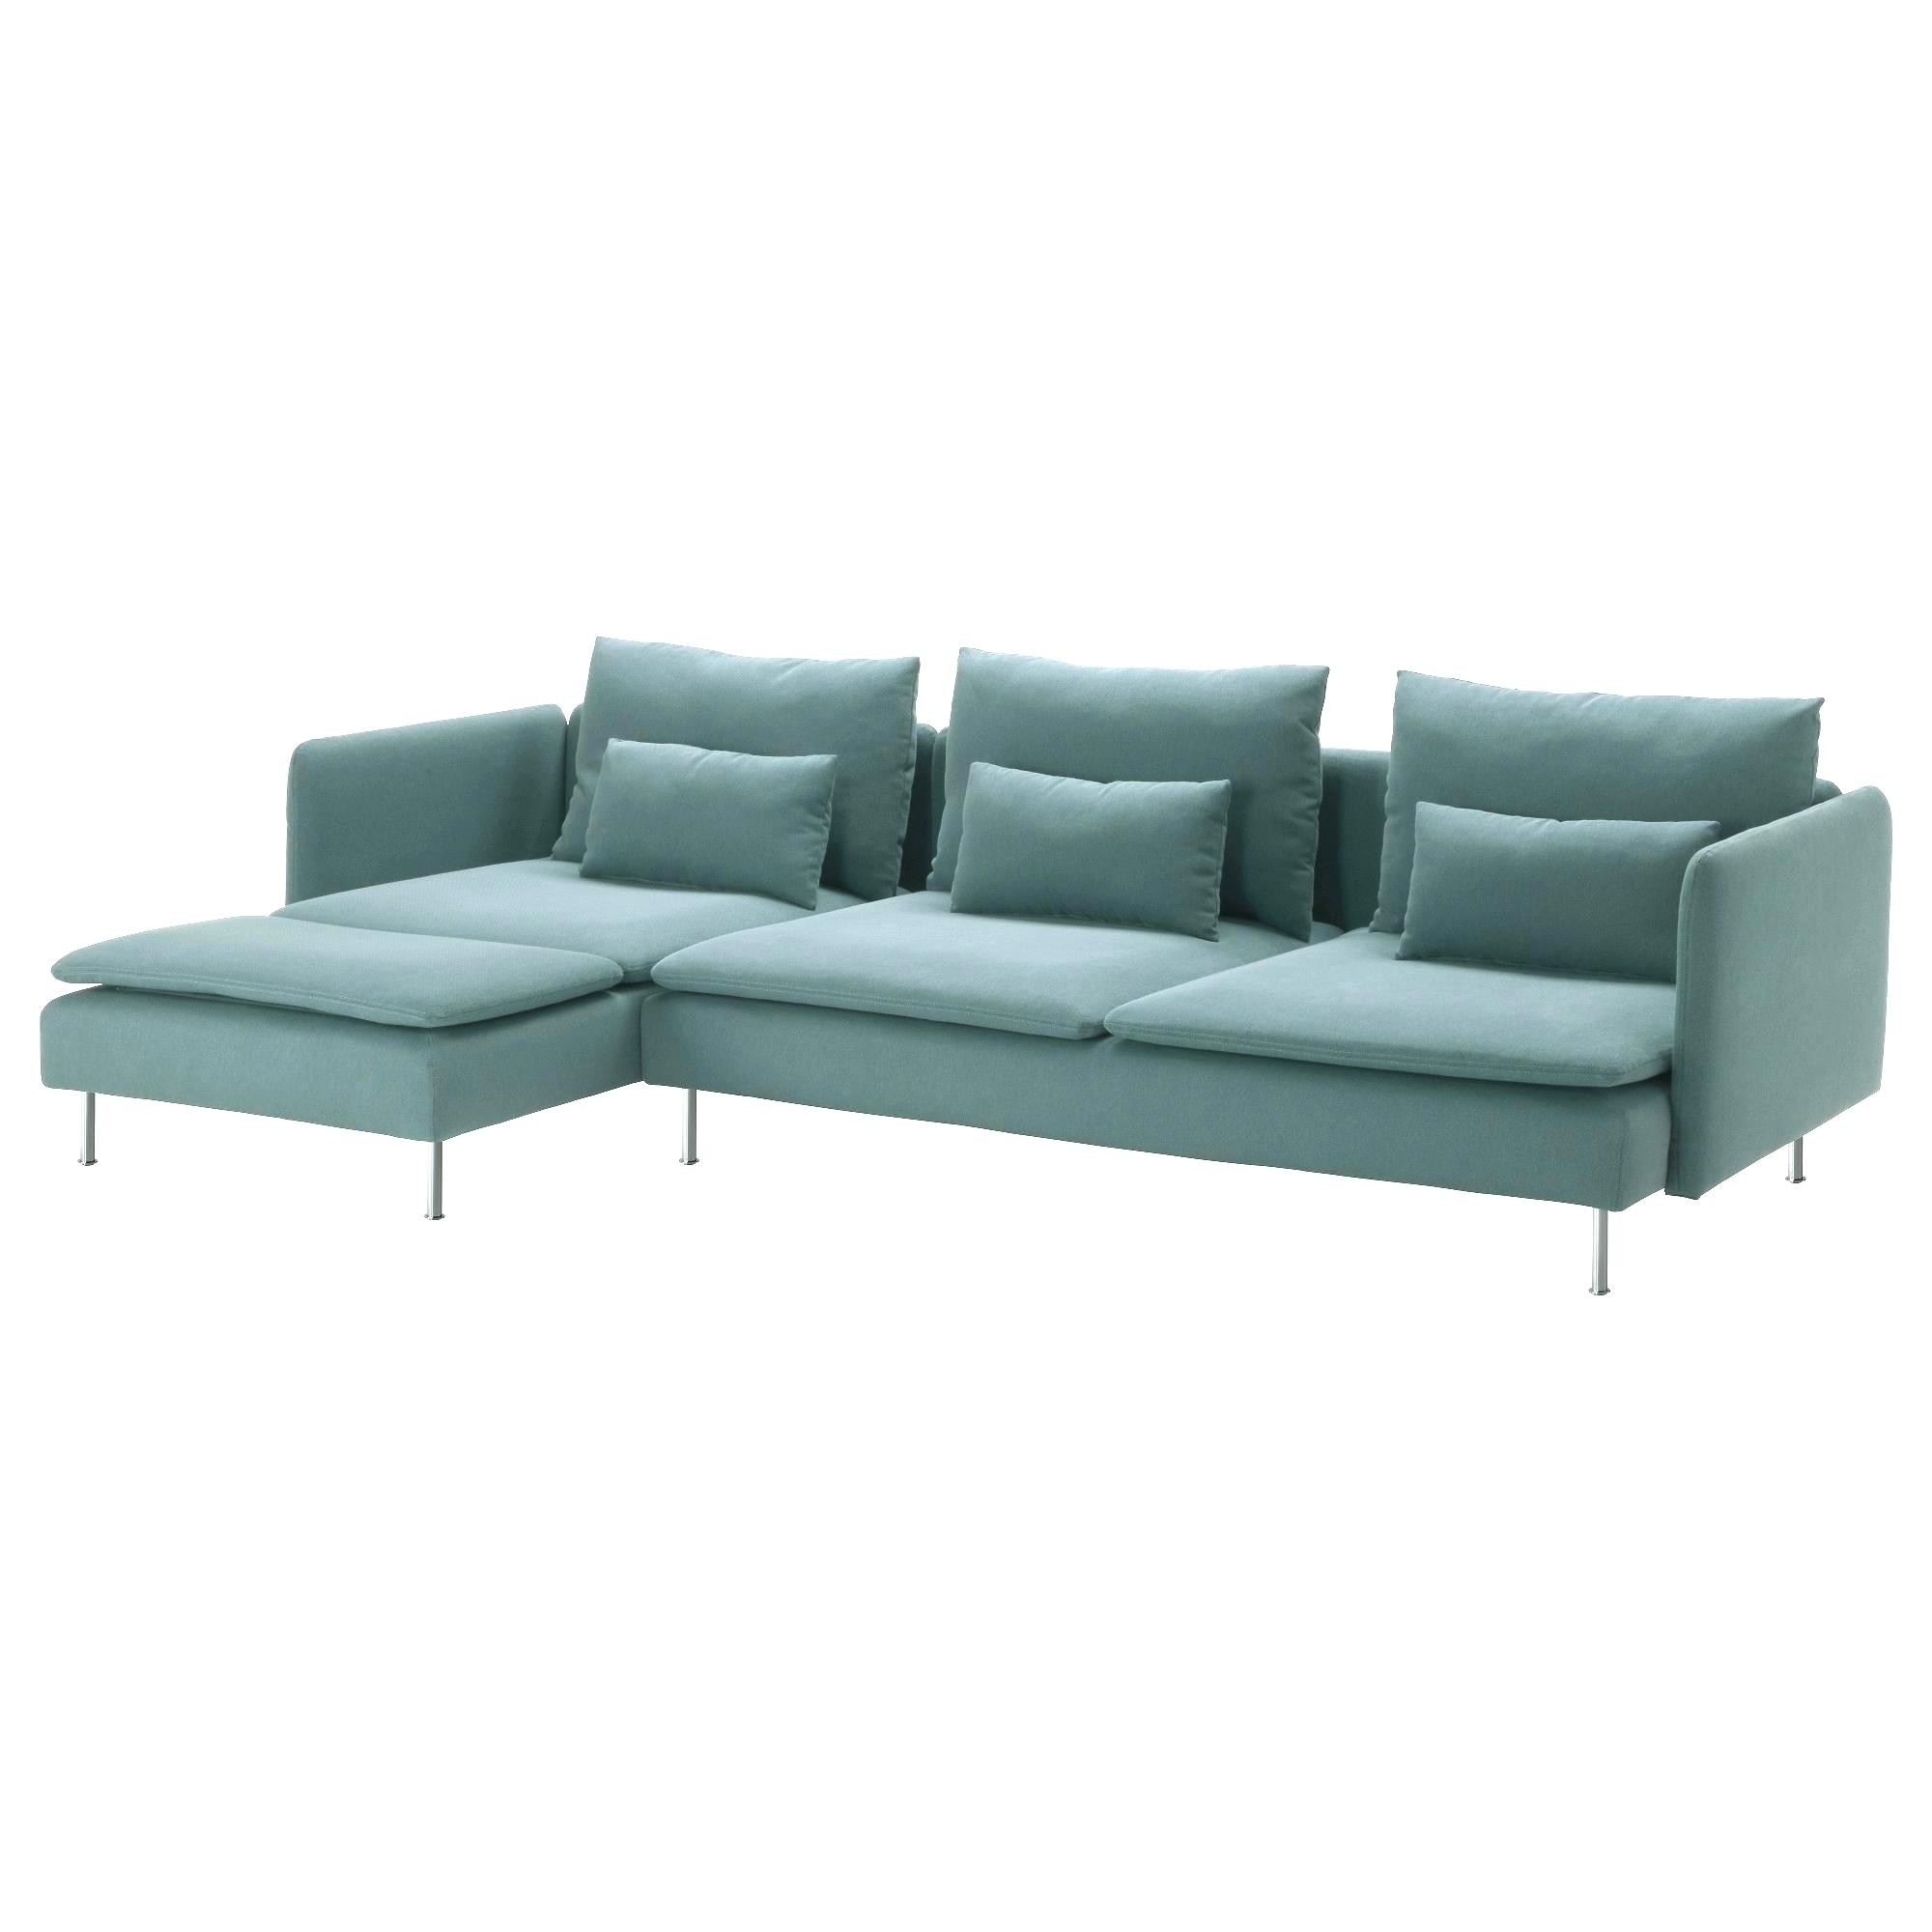 Used Leather Couches For Sale Sectional Couch Vancouver Bc Furniture Pertaining To Sectional Sofas At Bc Canada (View 6 of 15)